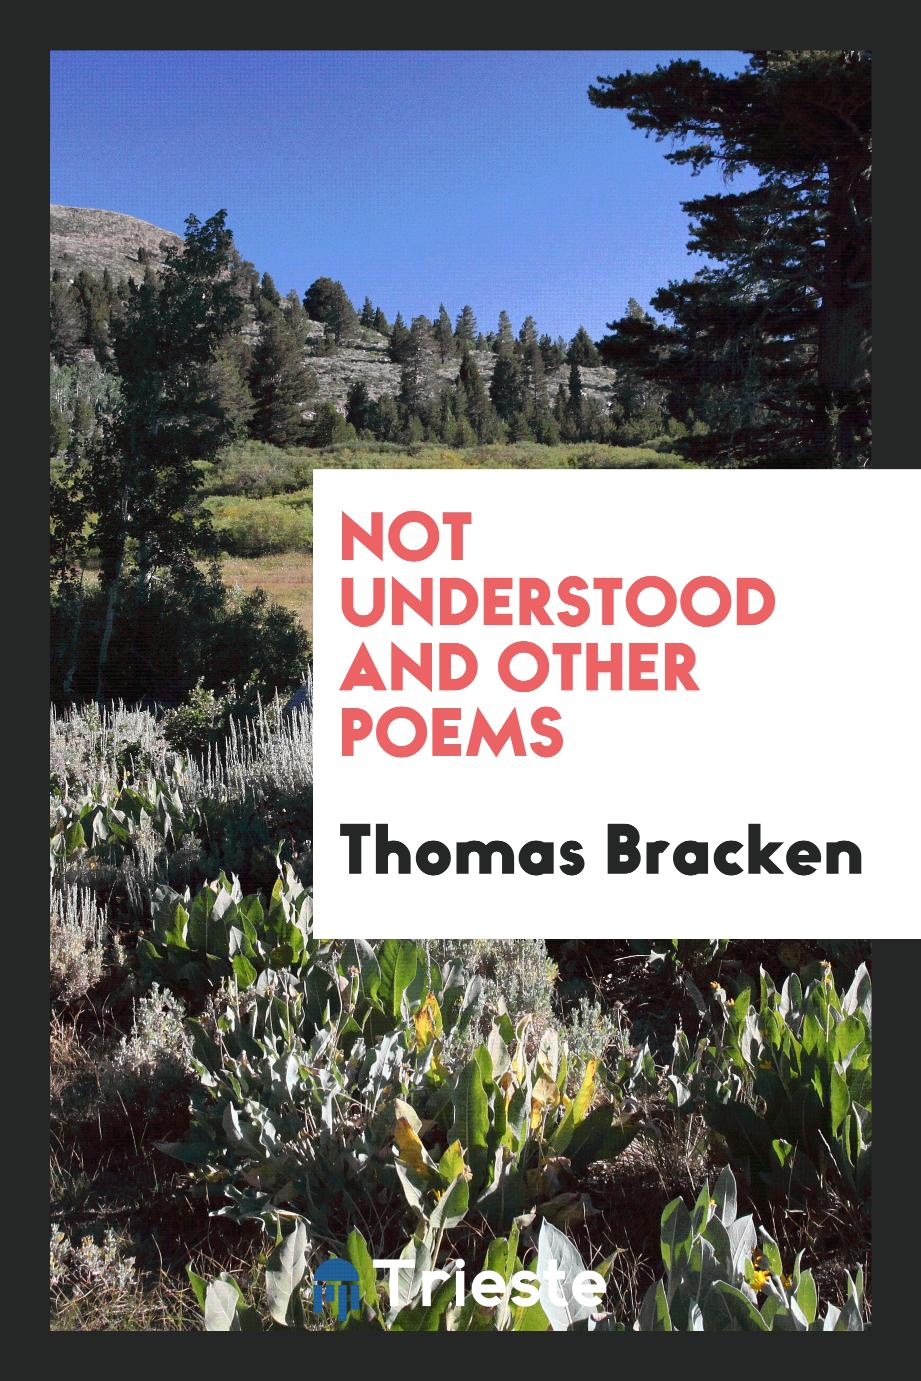 Not Understood and Other Poems